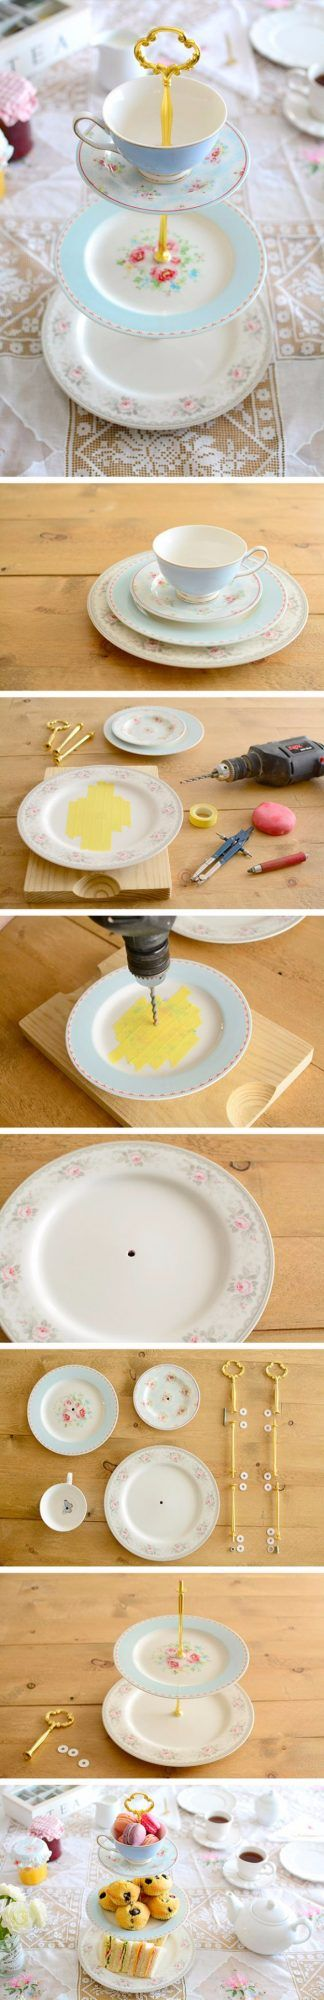 16 amazing diy ideas from old dishes that you can easily for Craft ideas for old dishes